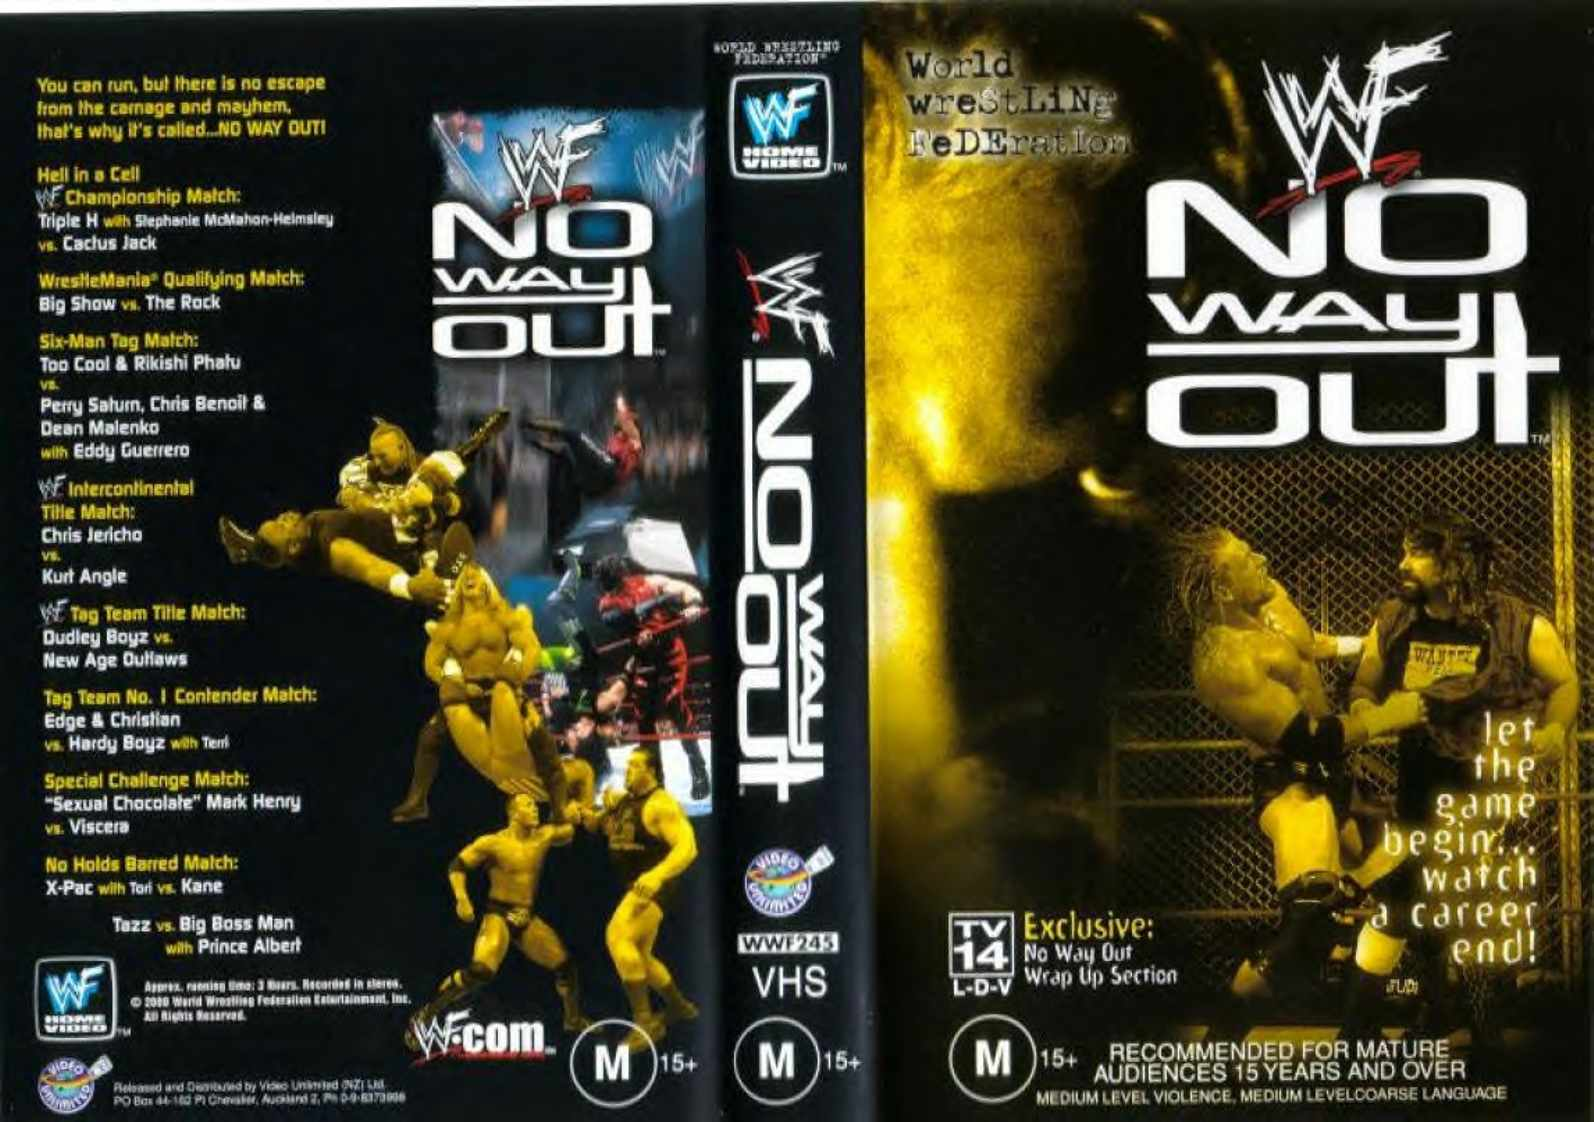 wwf_-_no_way_out000